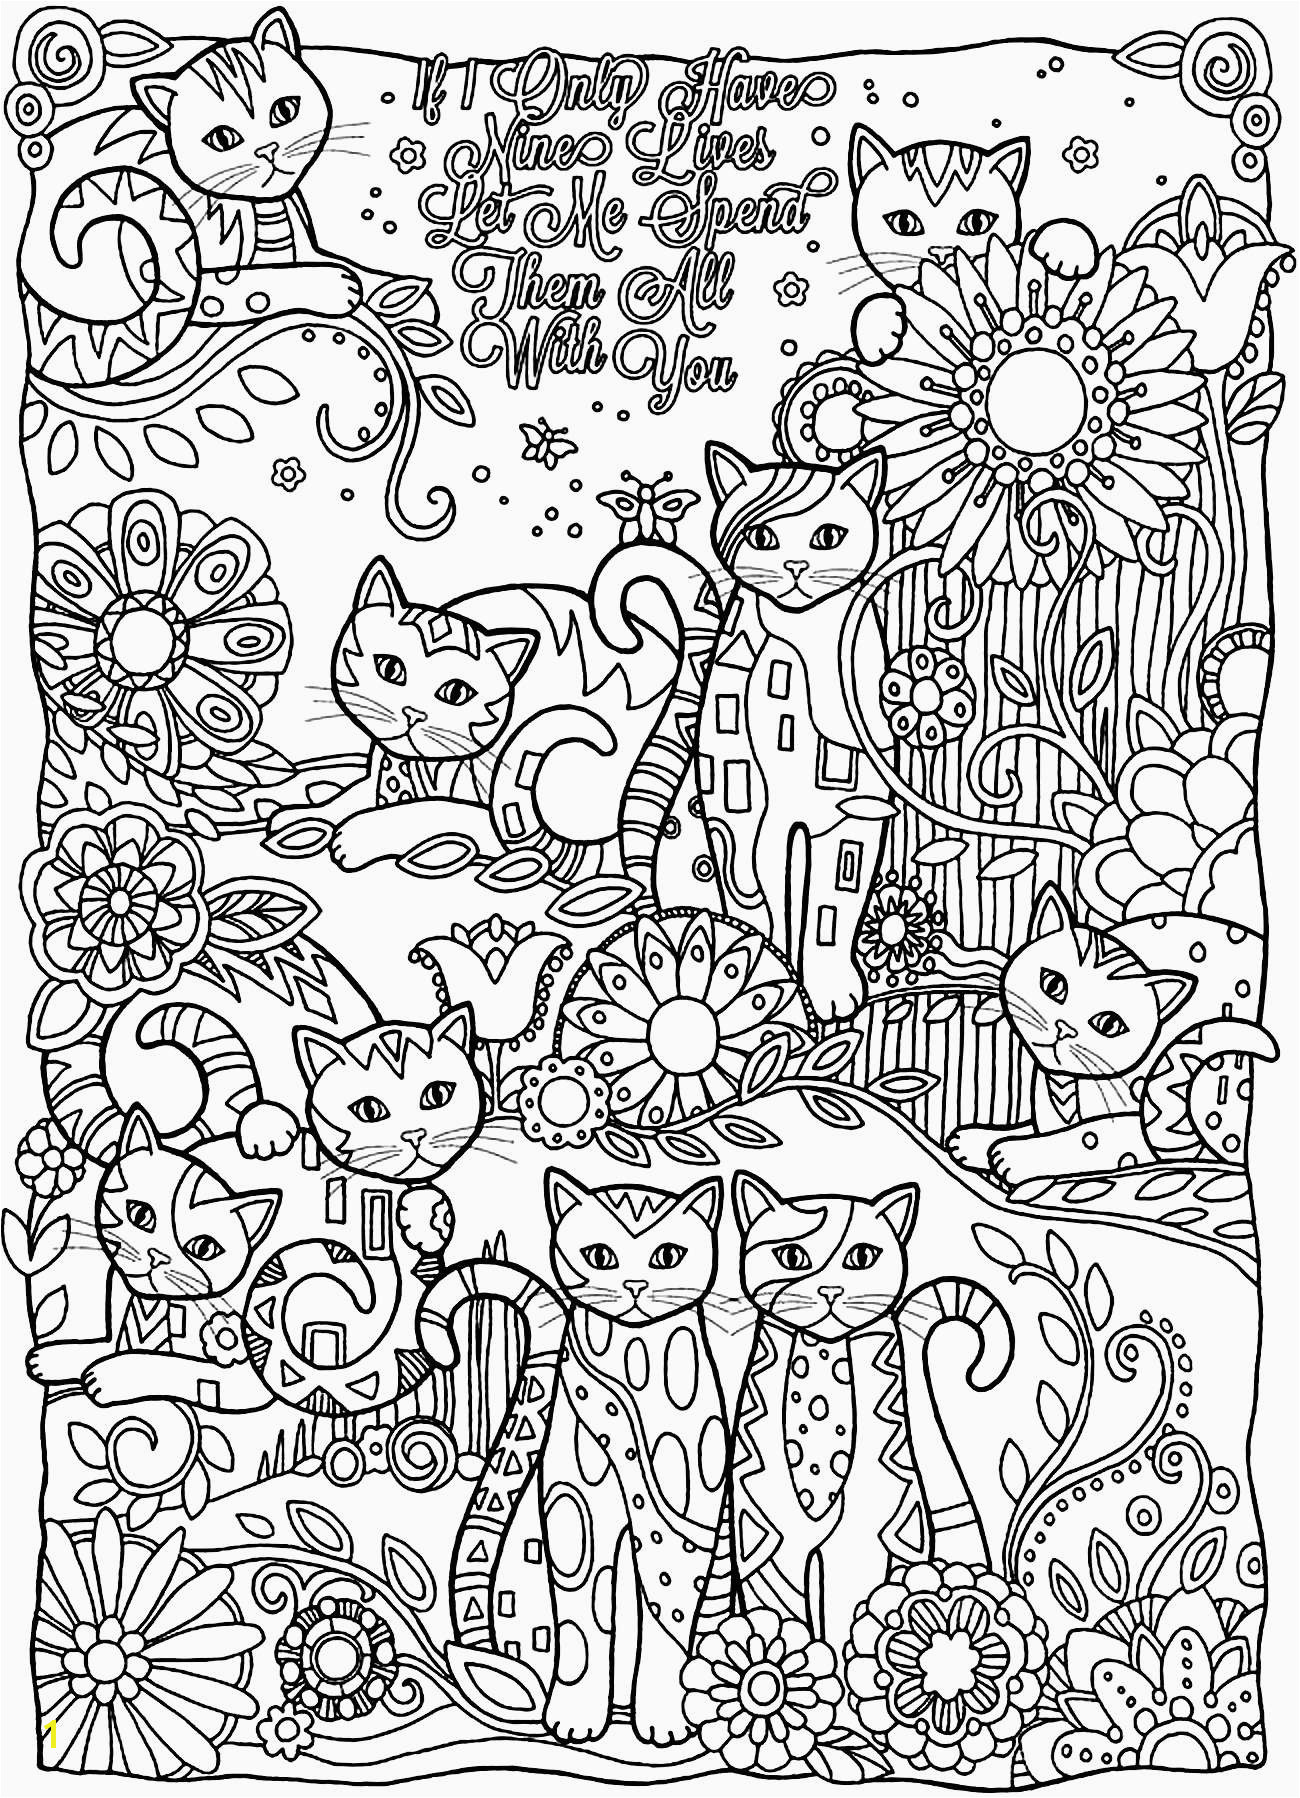 Free Christmas Colouring In Pages Christmas Coloring Pages Printable Luxury Cool Od Dog Coloring Pages